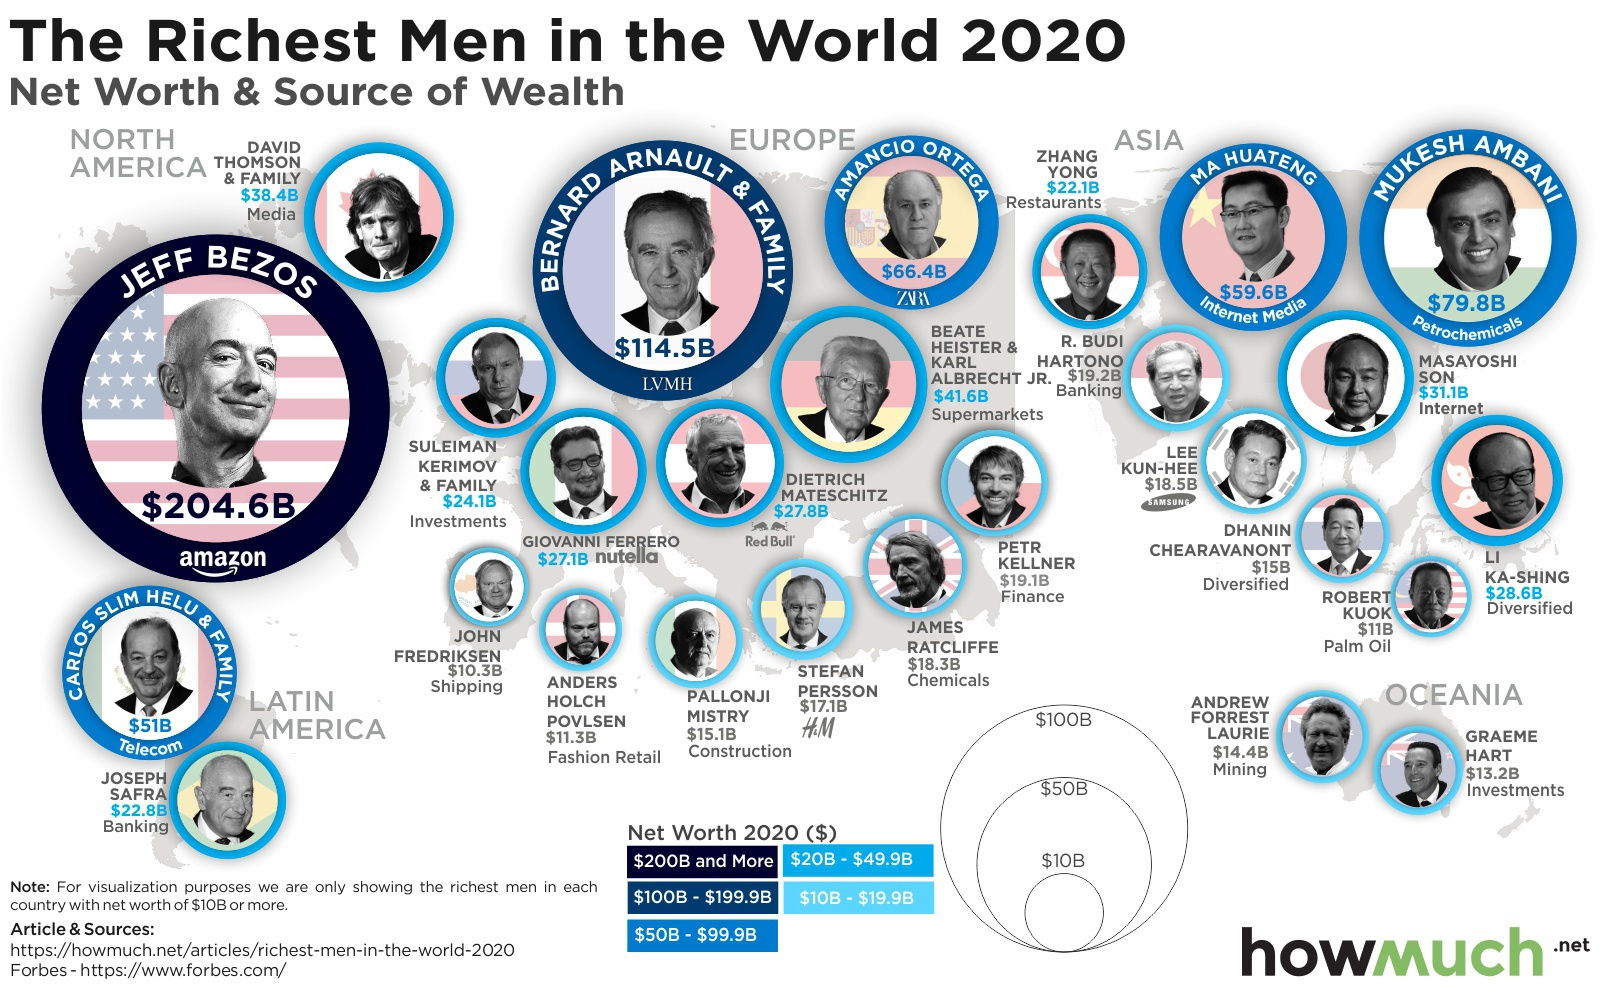 Top 10 richest men in 2020